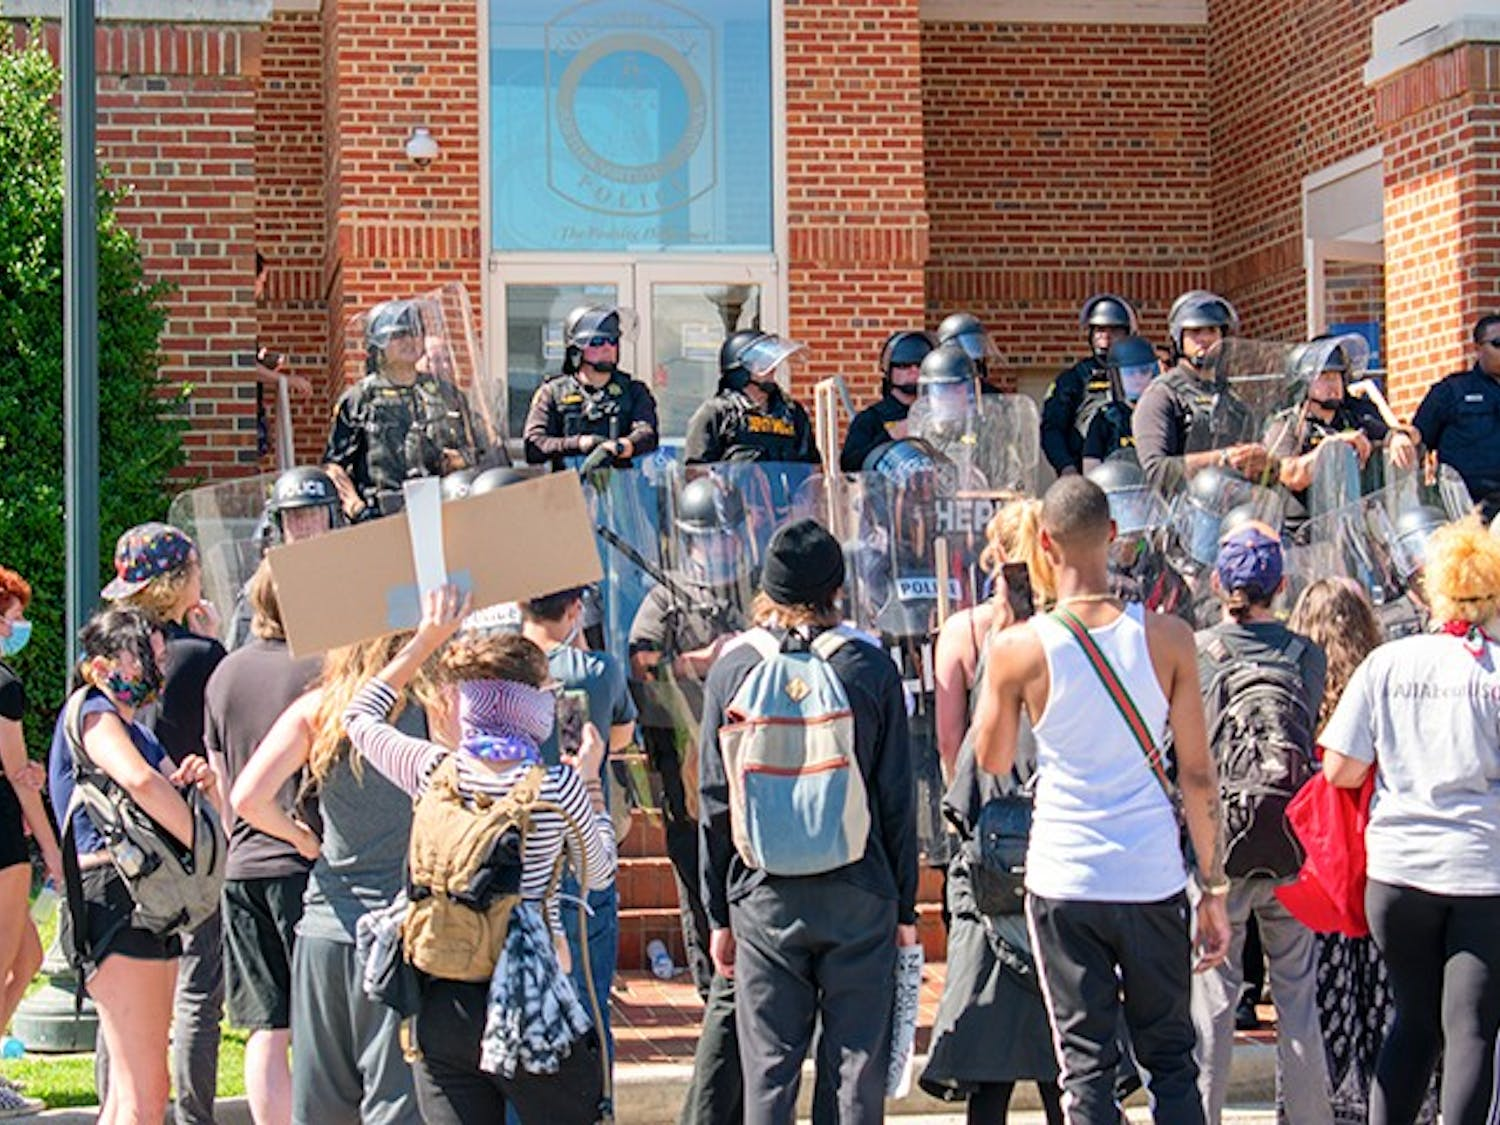 Protesters gathered in front of the Columbia Police Department. Armed police officers lined the steps of the building.